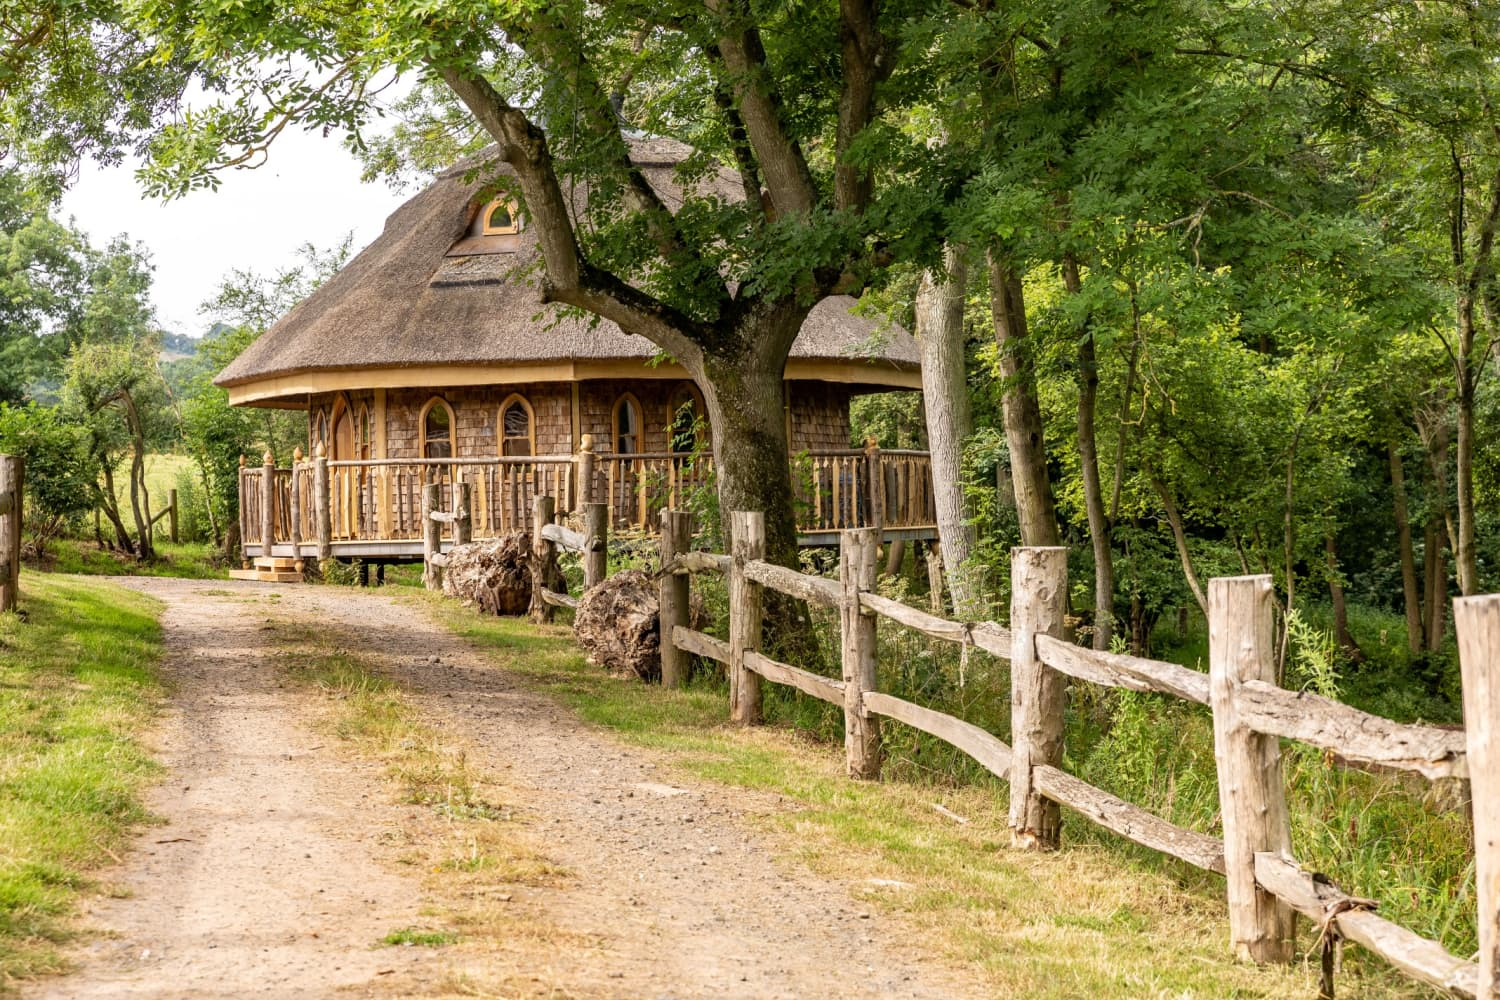 Peek Inside This Charming Treehouse Rental in the English Countryside